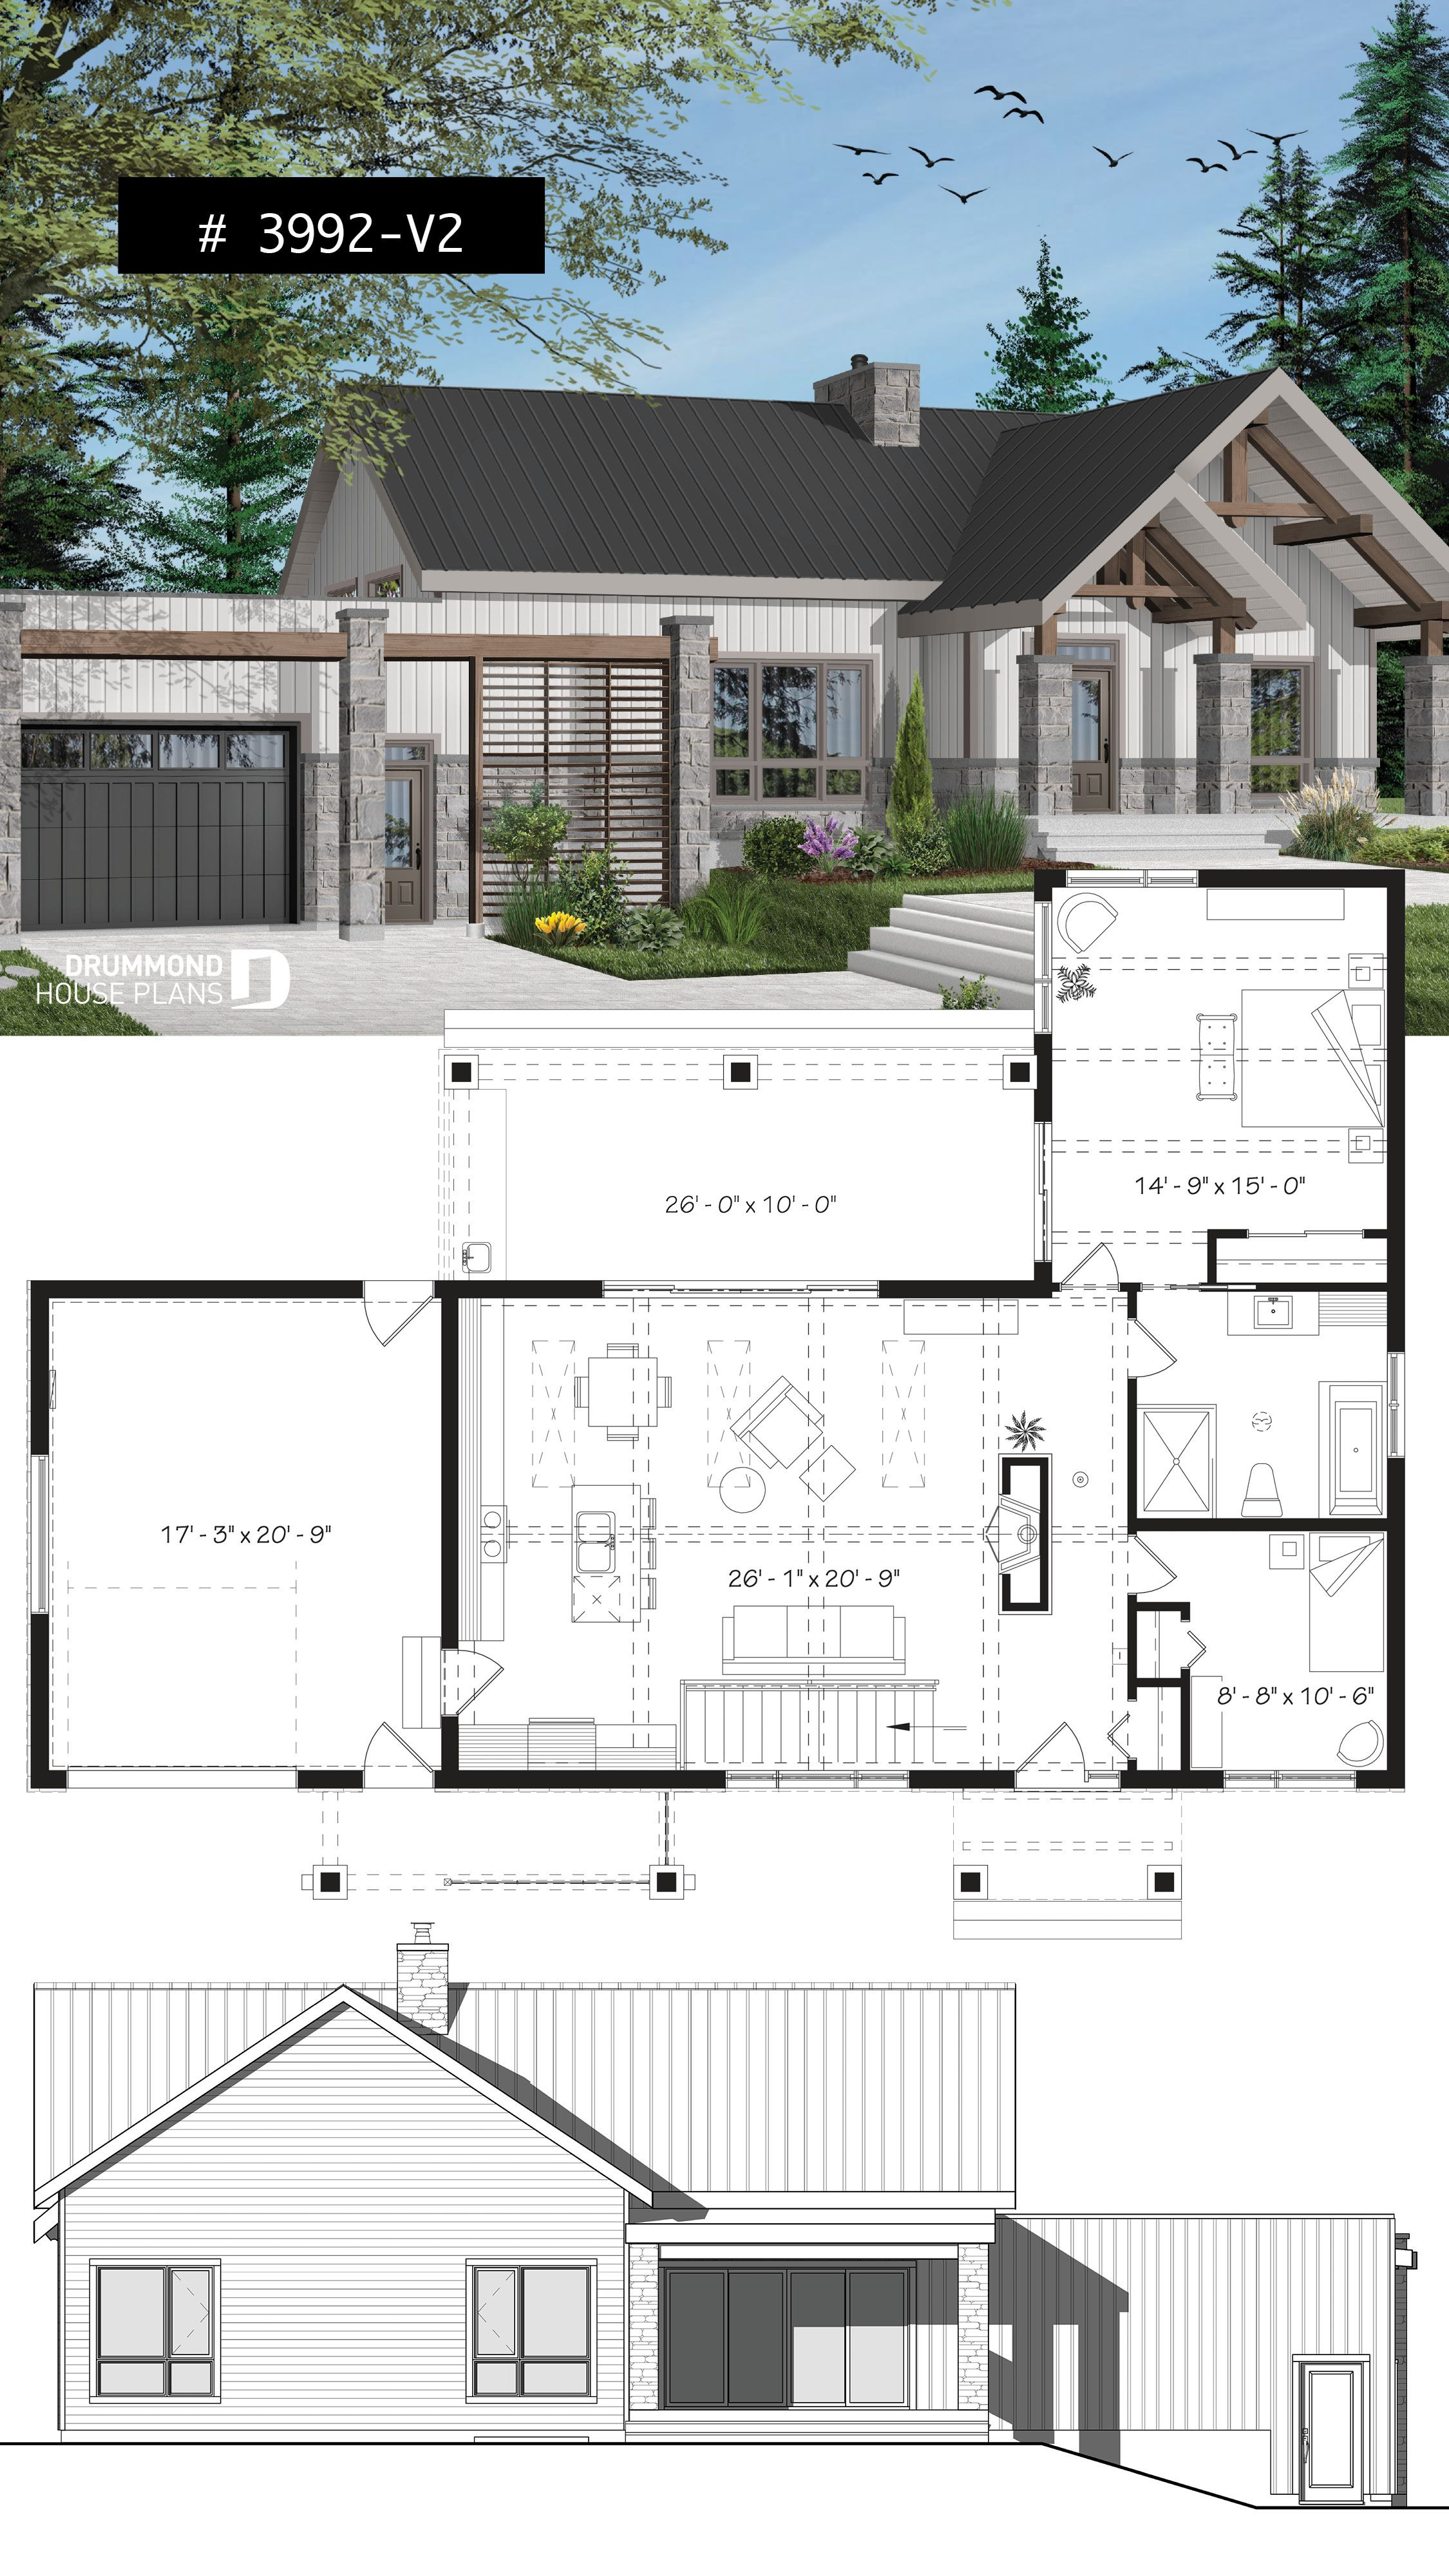 Small House Plans with Open Floor Plan Luxury House Plan Olympe 3 No 3992 V2